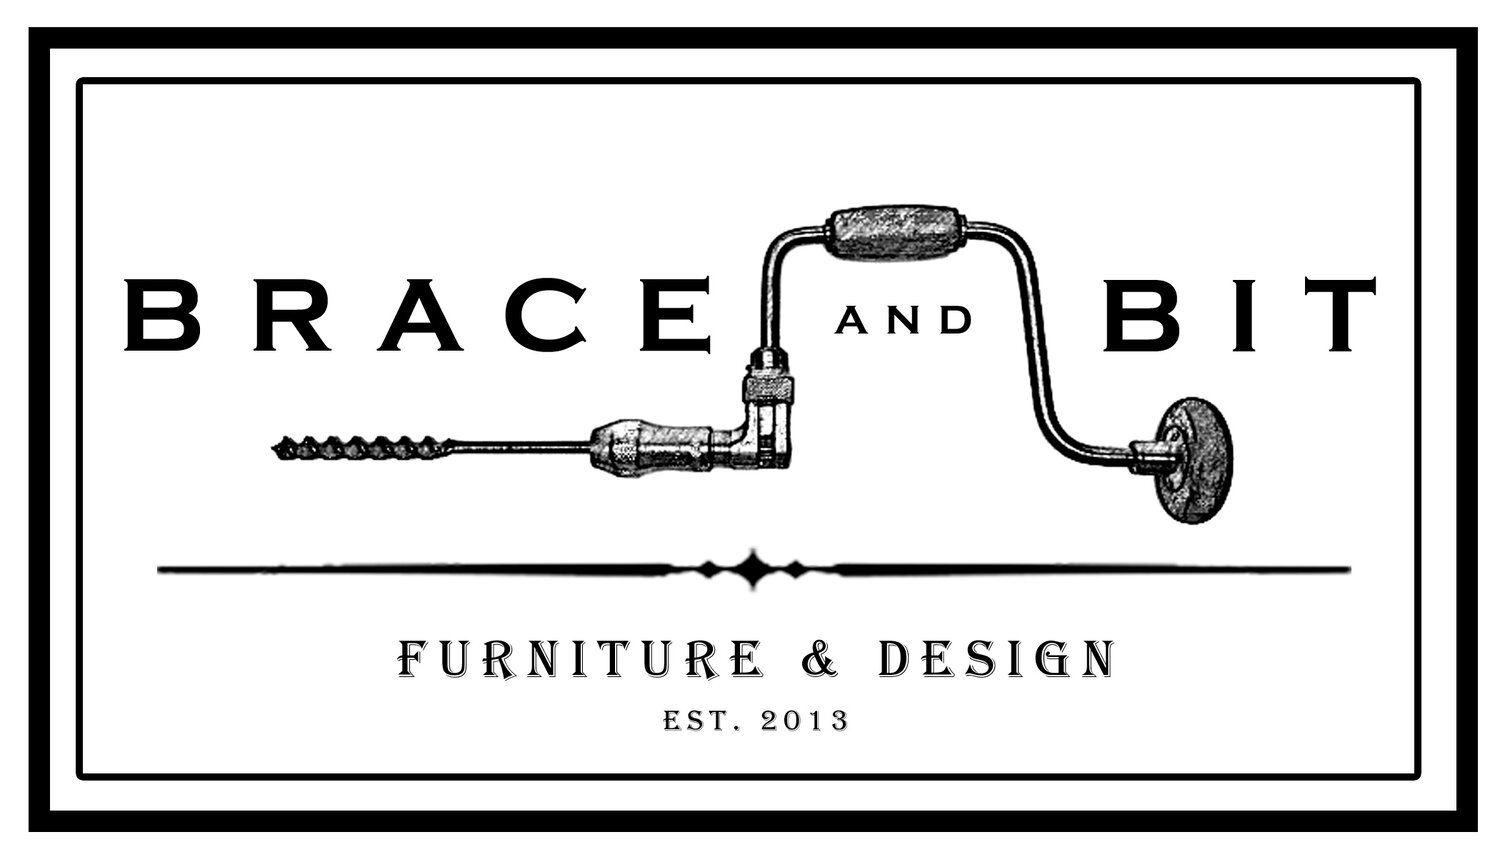 Brace and Bit: Furniture and Design